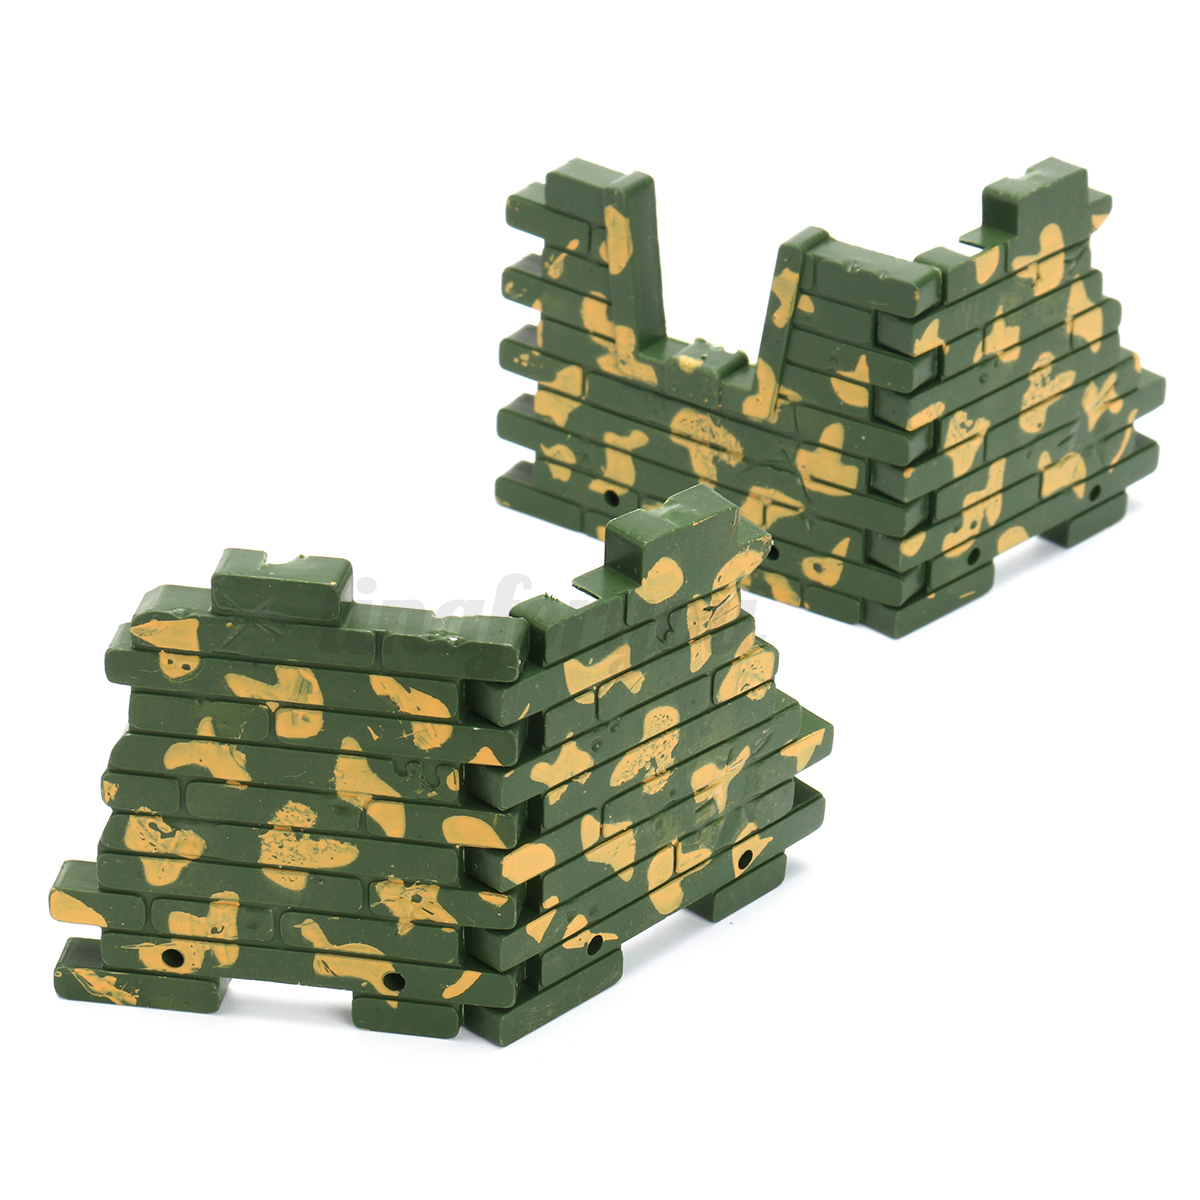 238PCS-Military-Plastic-Soldiers-Army-Men-Figures-Tanks-Accessories-Play-Set-Toy thumbnail 6